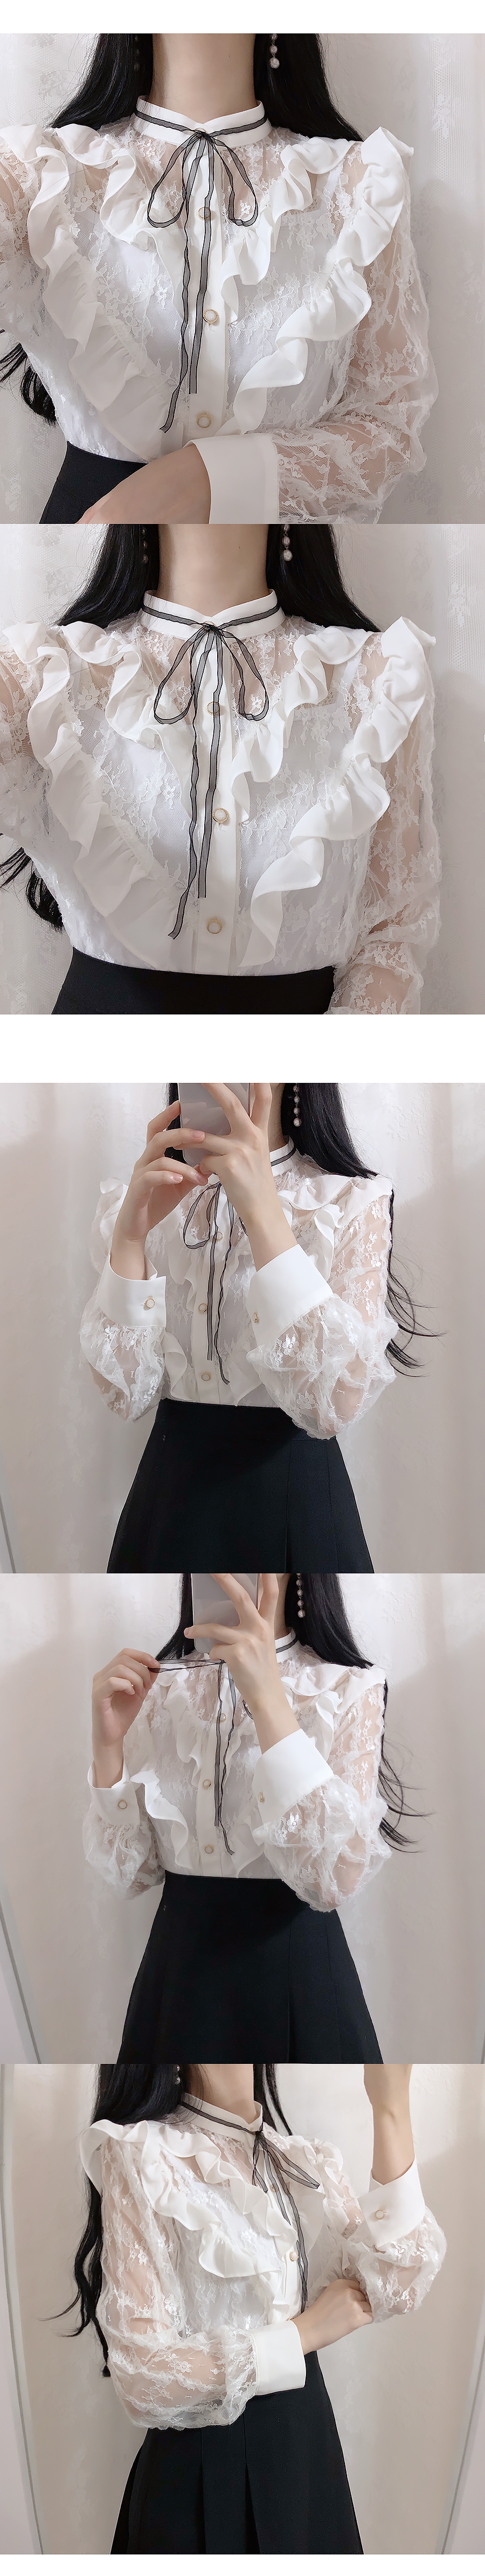 Hepburn see-through lace blouse